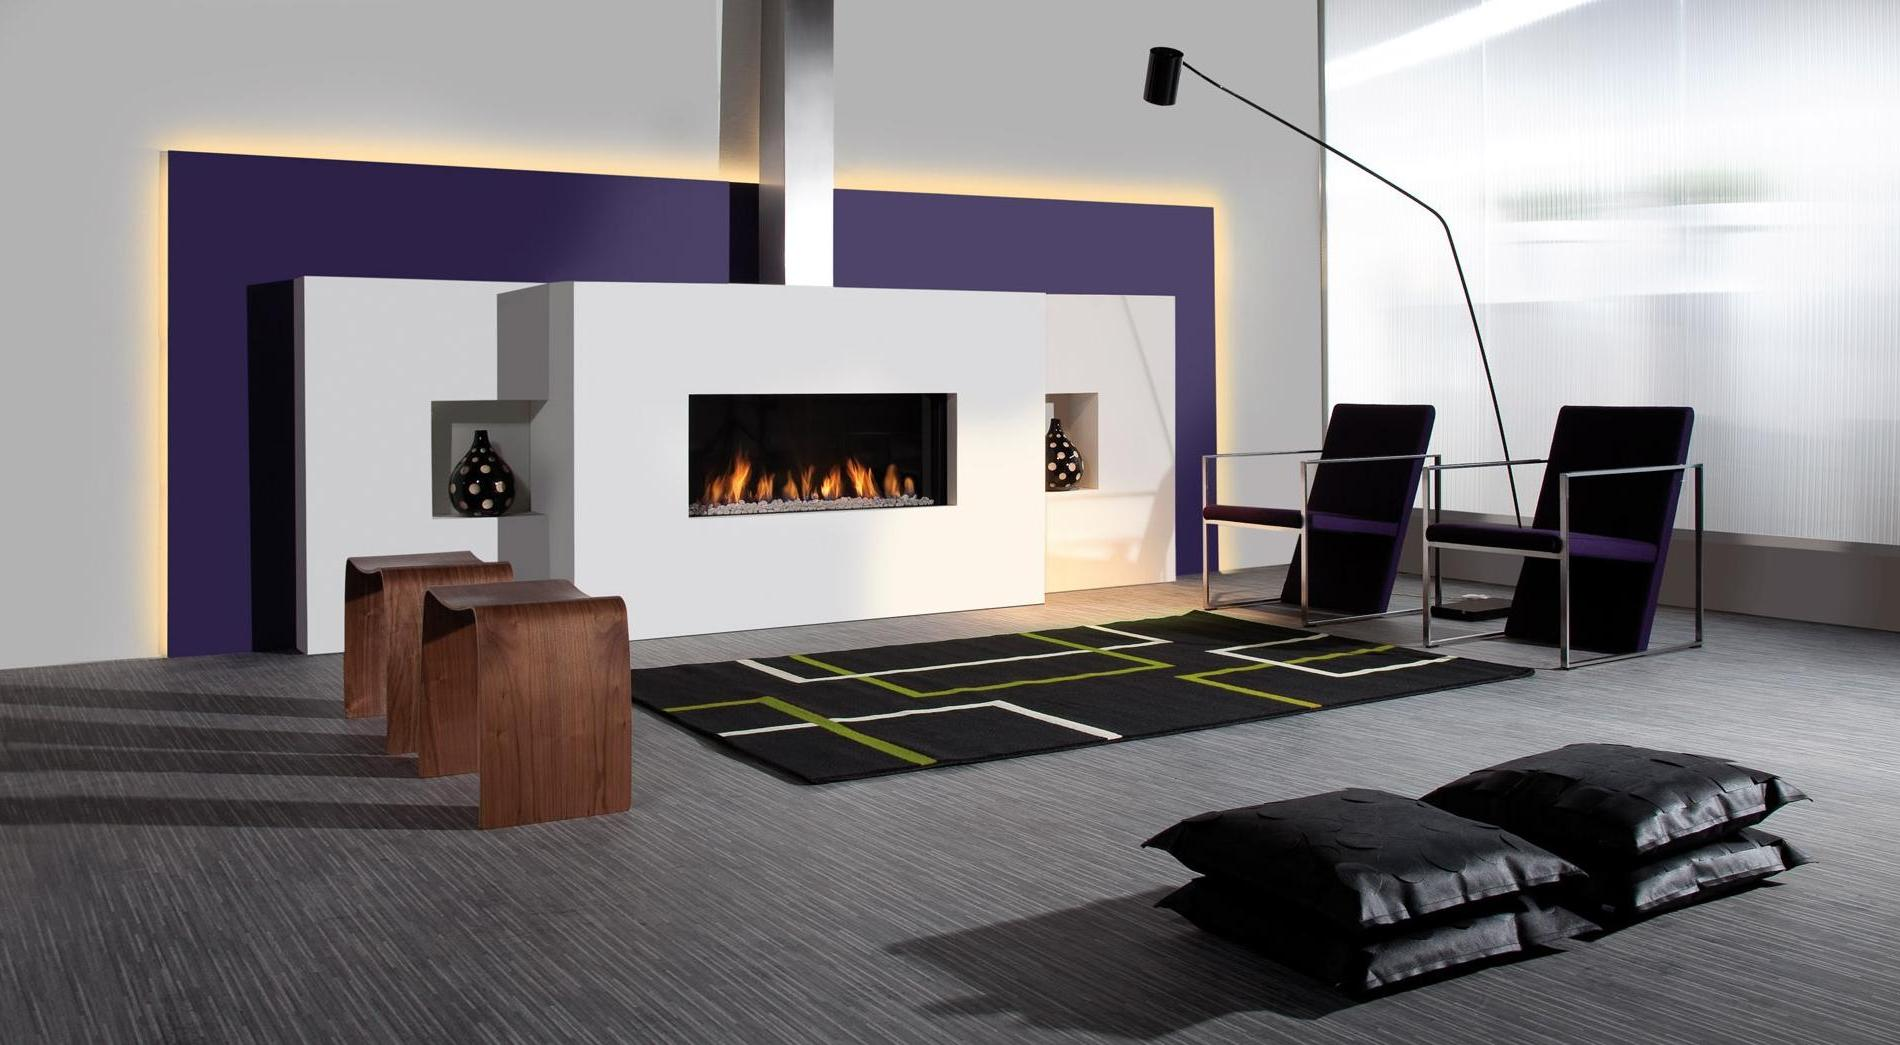 Fireplace-Modern-Home-Interior-Design-Ideas-for-Living-Room